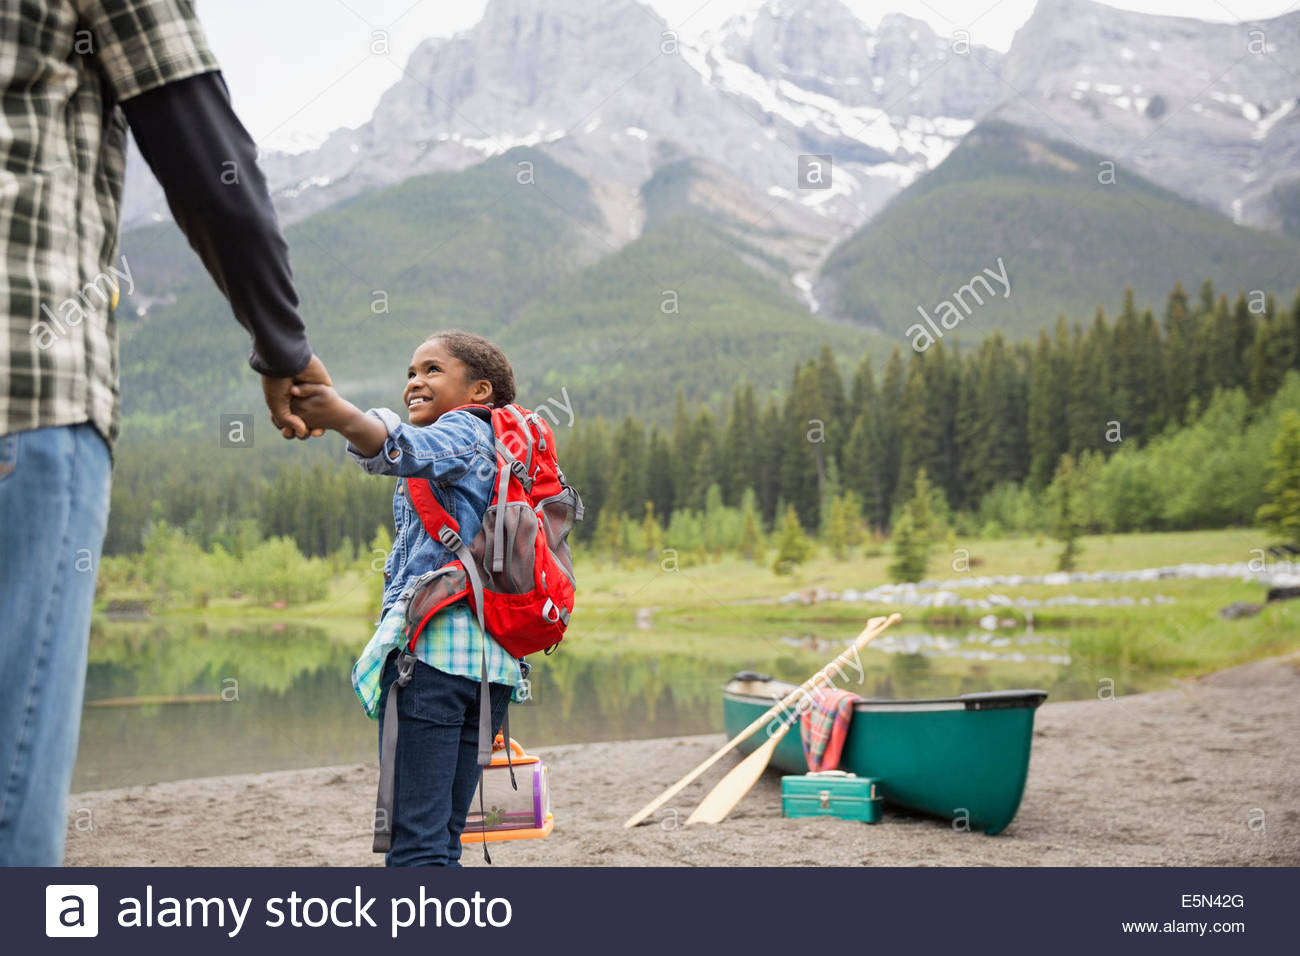 Father and daughter preparing to canoe - Stock Image